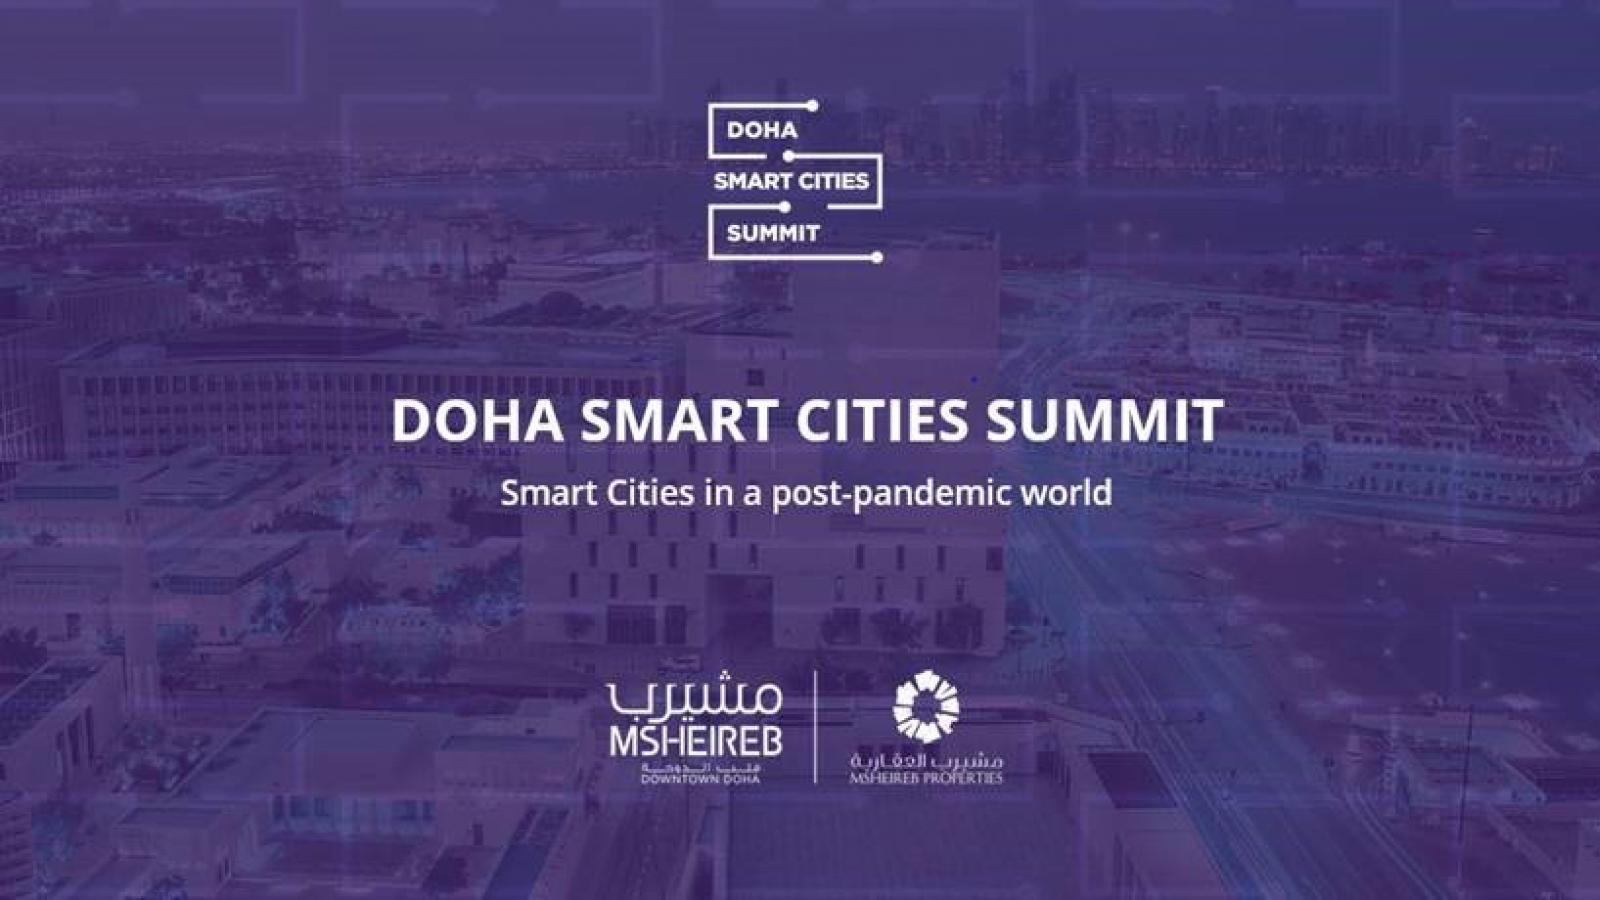 Msheireb Properties to host Doha Smart Cities Summit on November 24